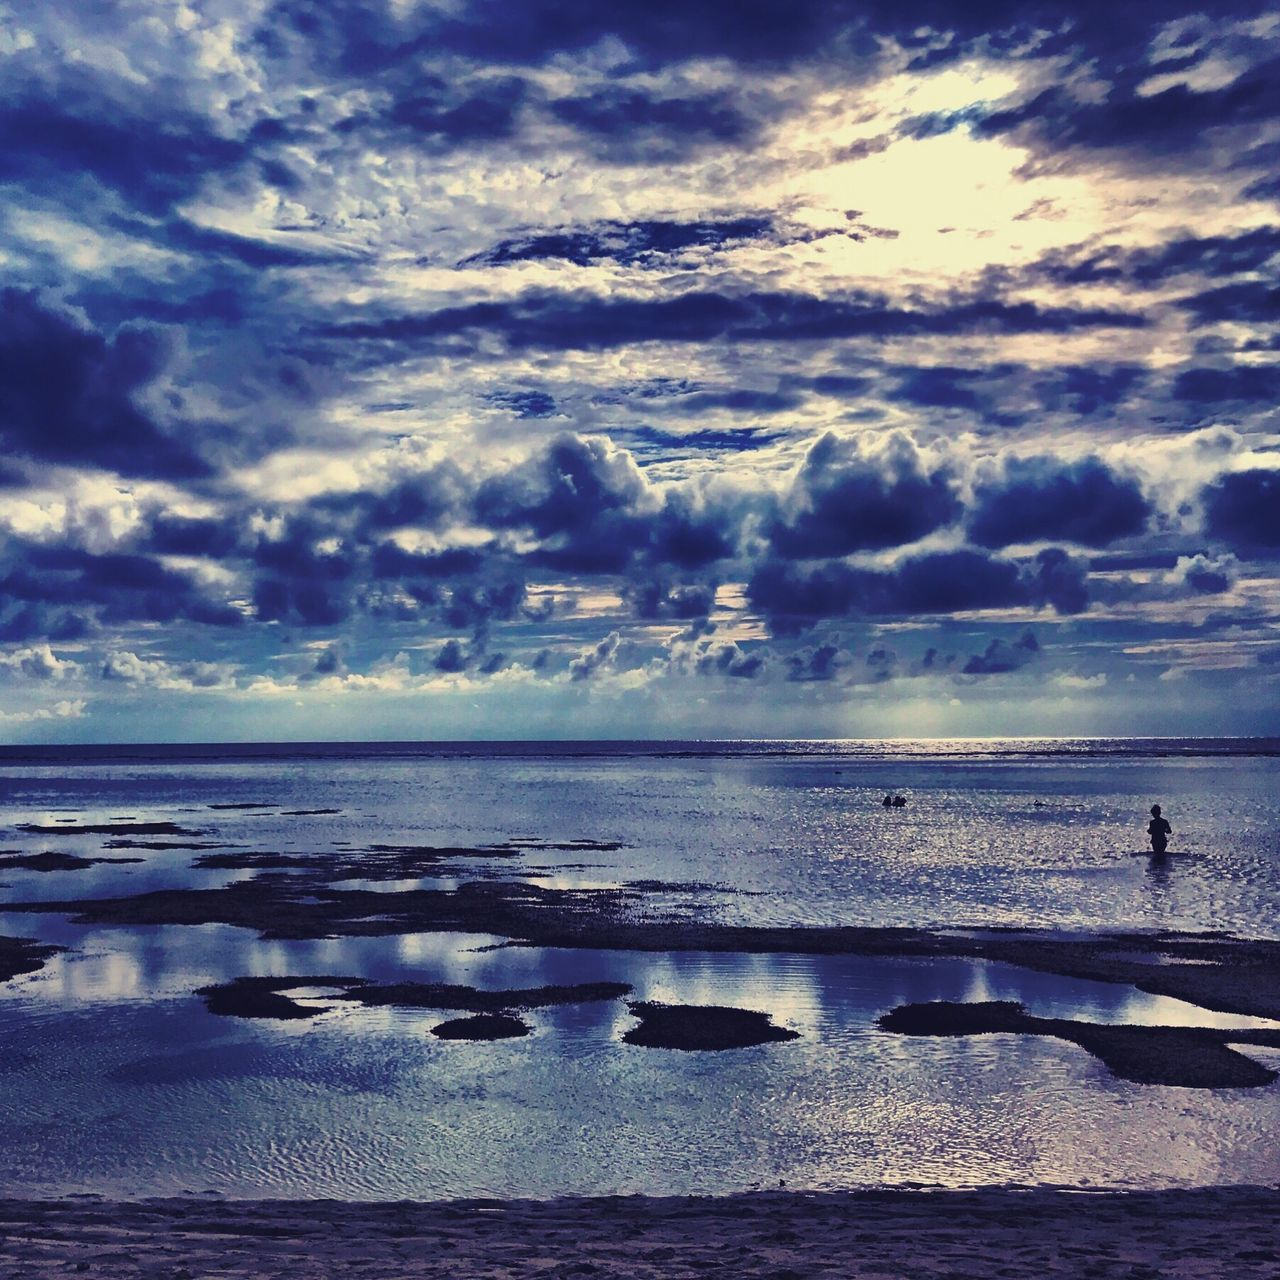 Cloudy seascape Sea Scenics Water Beauty In Nature Sky Cloud - Sky Nature Tranquil Scene Horizon Over Water Tranquility Idyllic Beach Outdoors No People Day